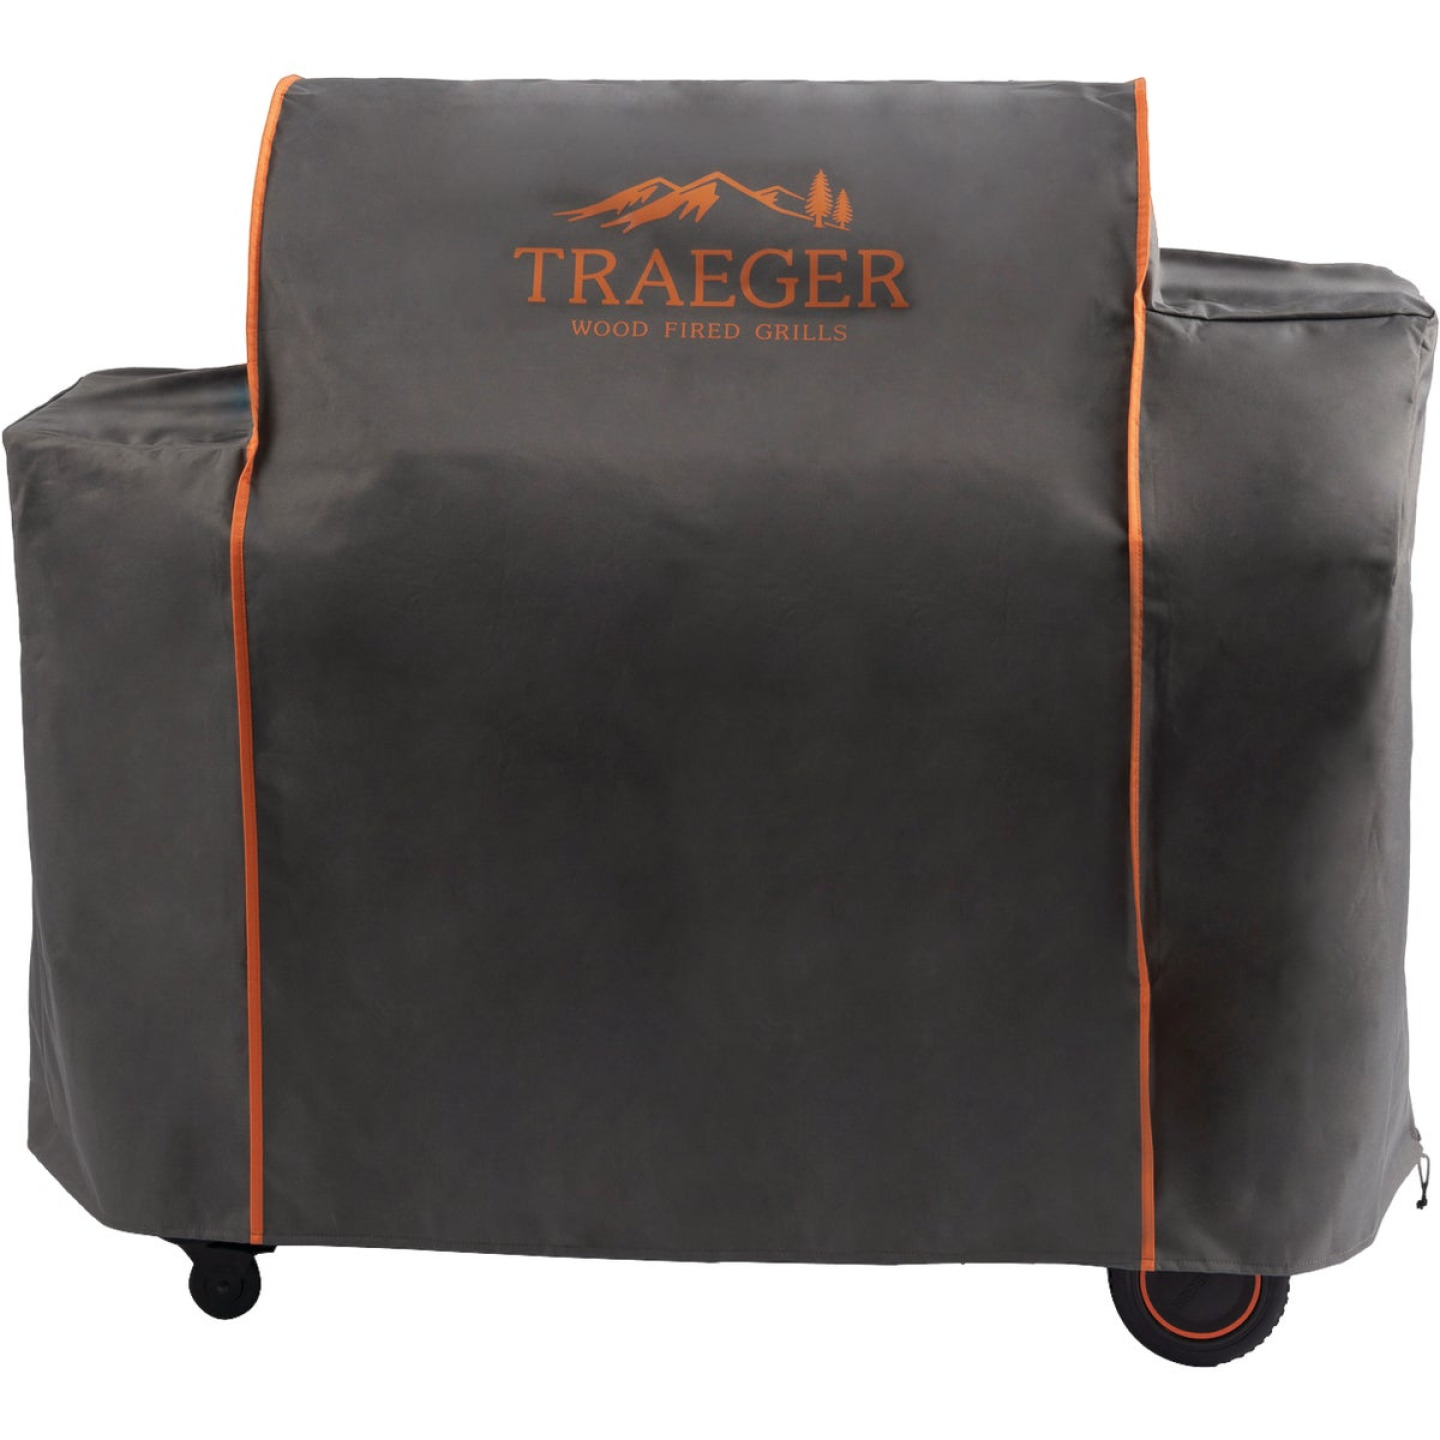 Traeger Timberline 1300 58 In. Heavy-Duty Full Length Grill Cover Image 1